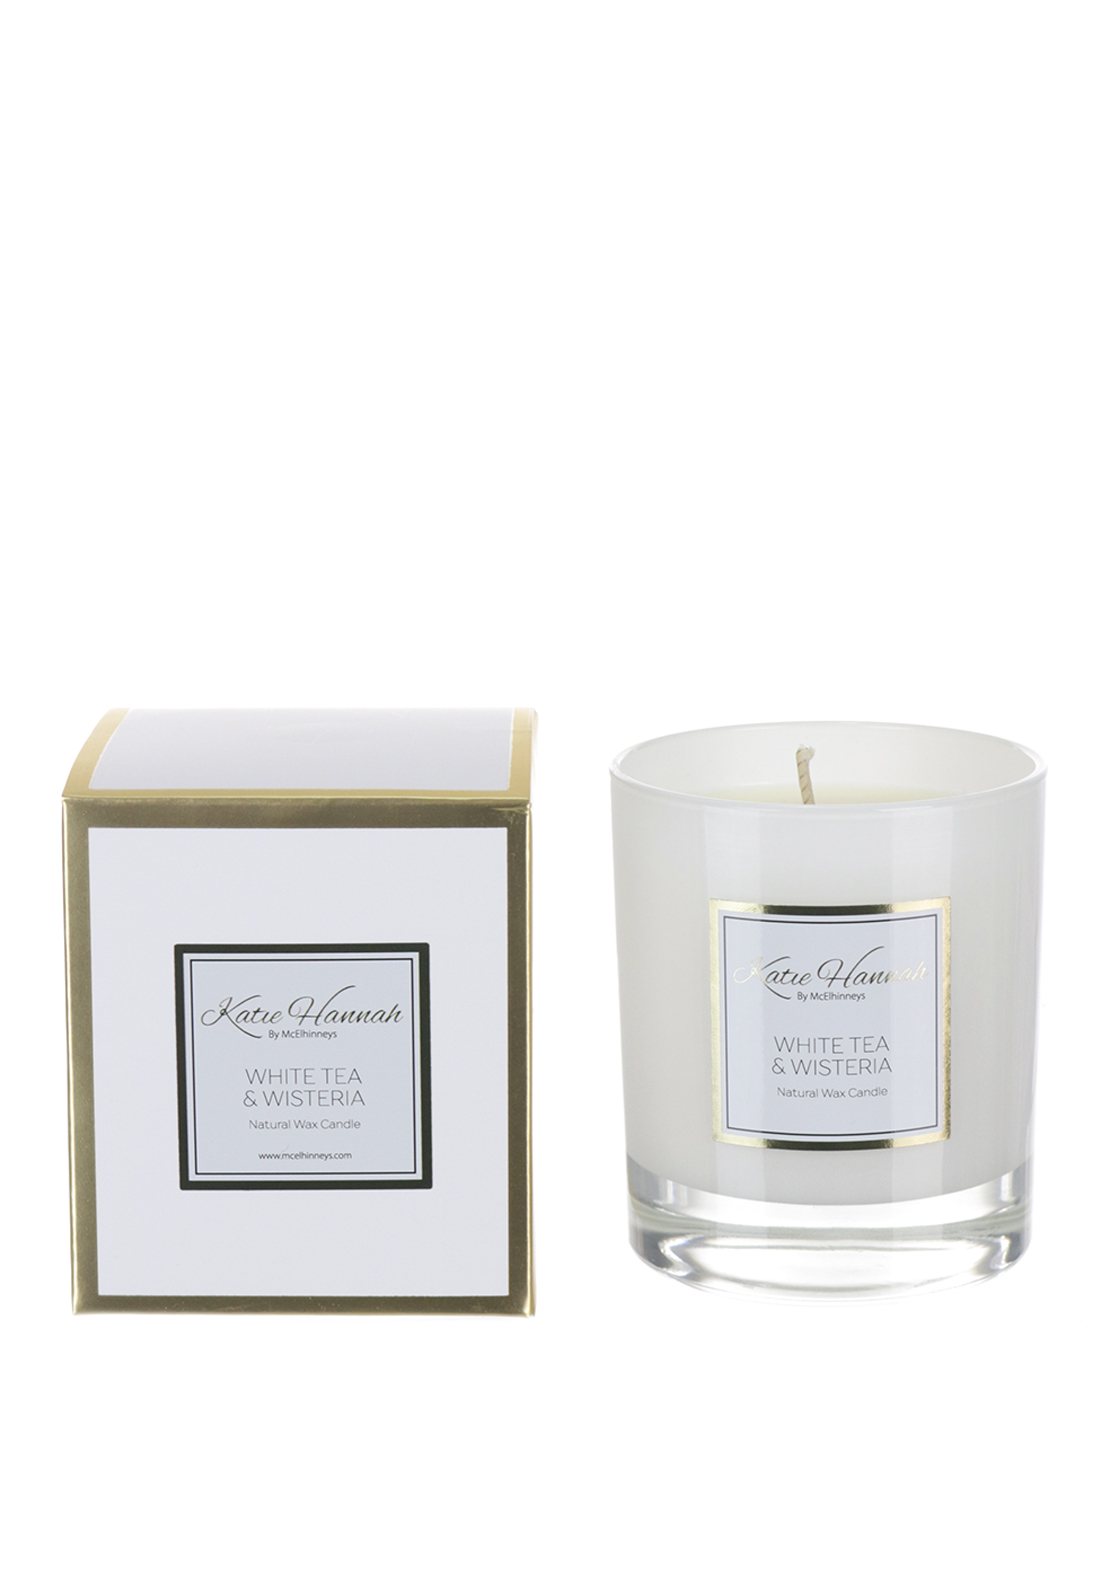 Katie Hannah By McElhinneys White Tea & Wisteria Natural Wax Candle